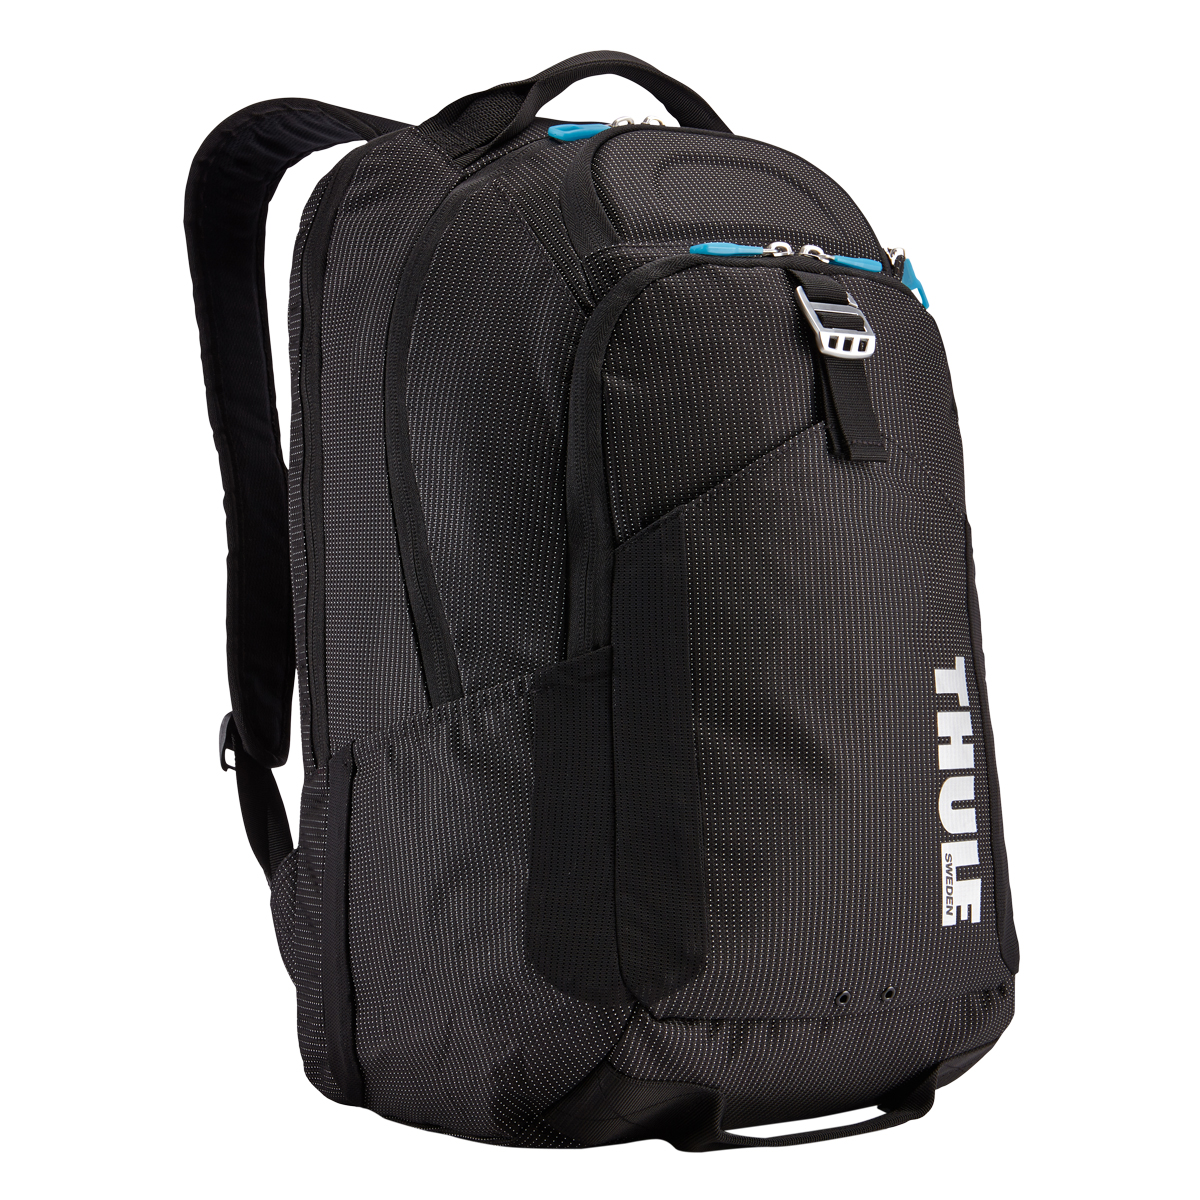 THULE スーリー バックパック TCBP-417 ブラック 【 Crossover 32L Backpack 】【 リュック デイパック バッグ 15インチノートパソコン収納 】 【 リュックサック 】[PO10][bef][即日発送]